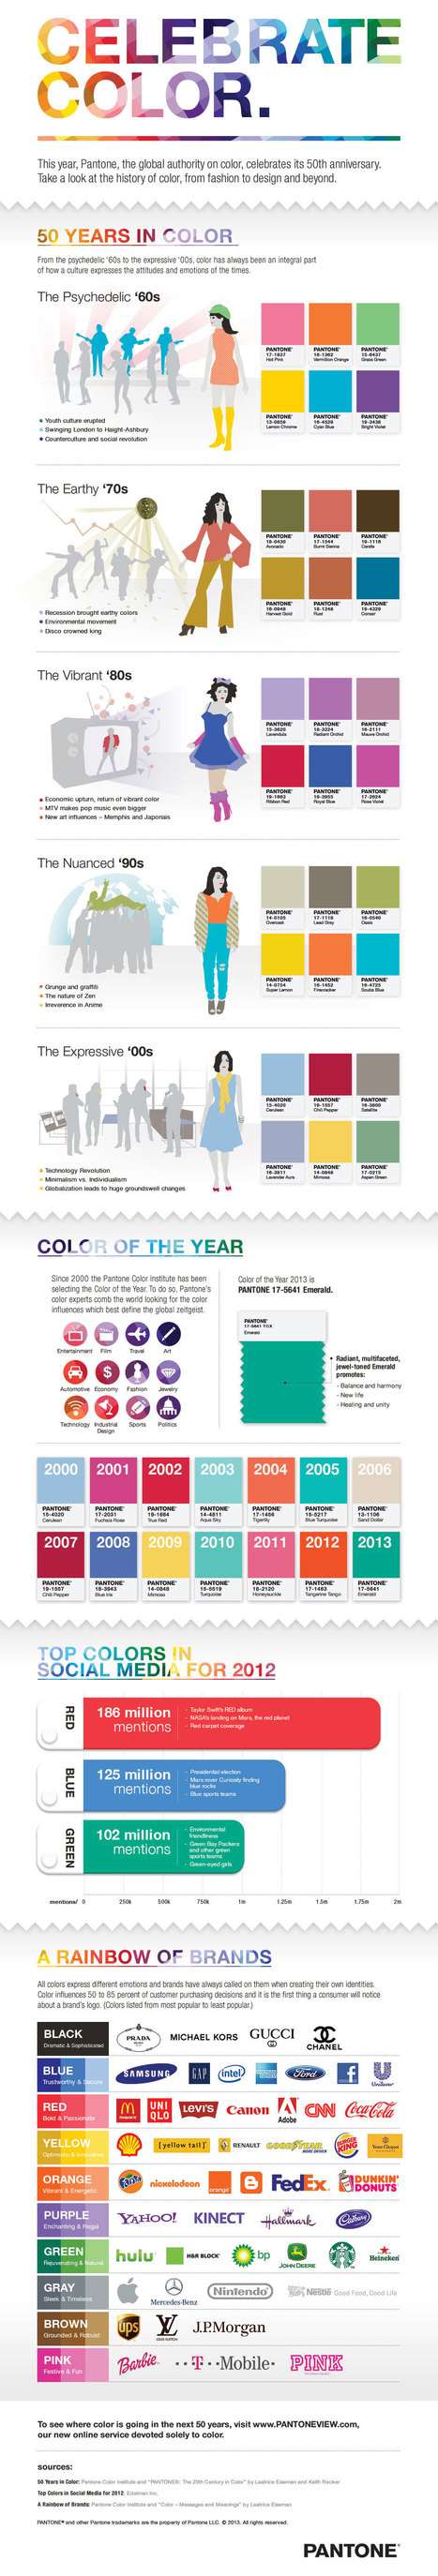 Celebrate Color: Color by Decade Infographic from Pantone.com | PEI AUDIT | Scoop.it